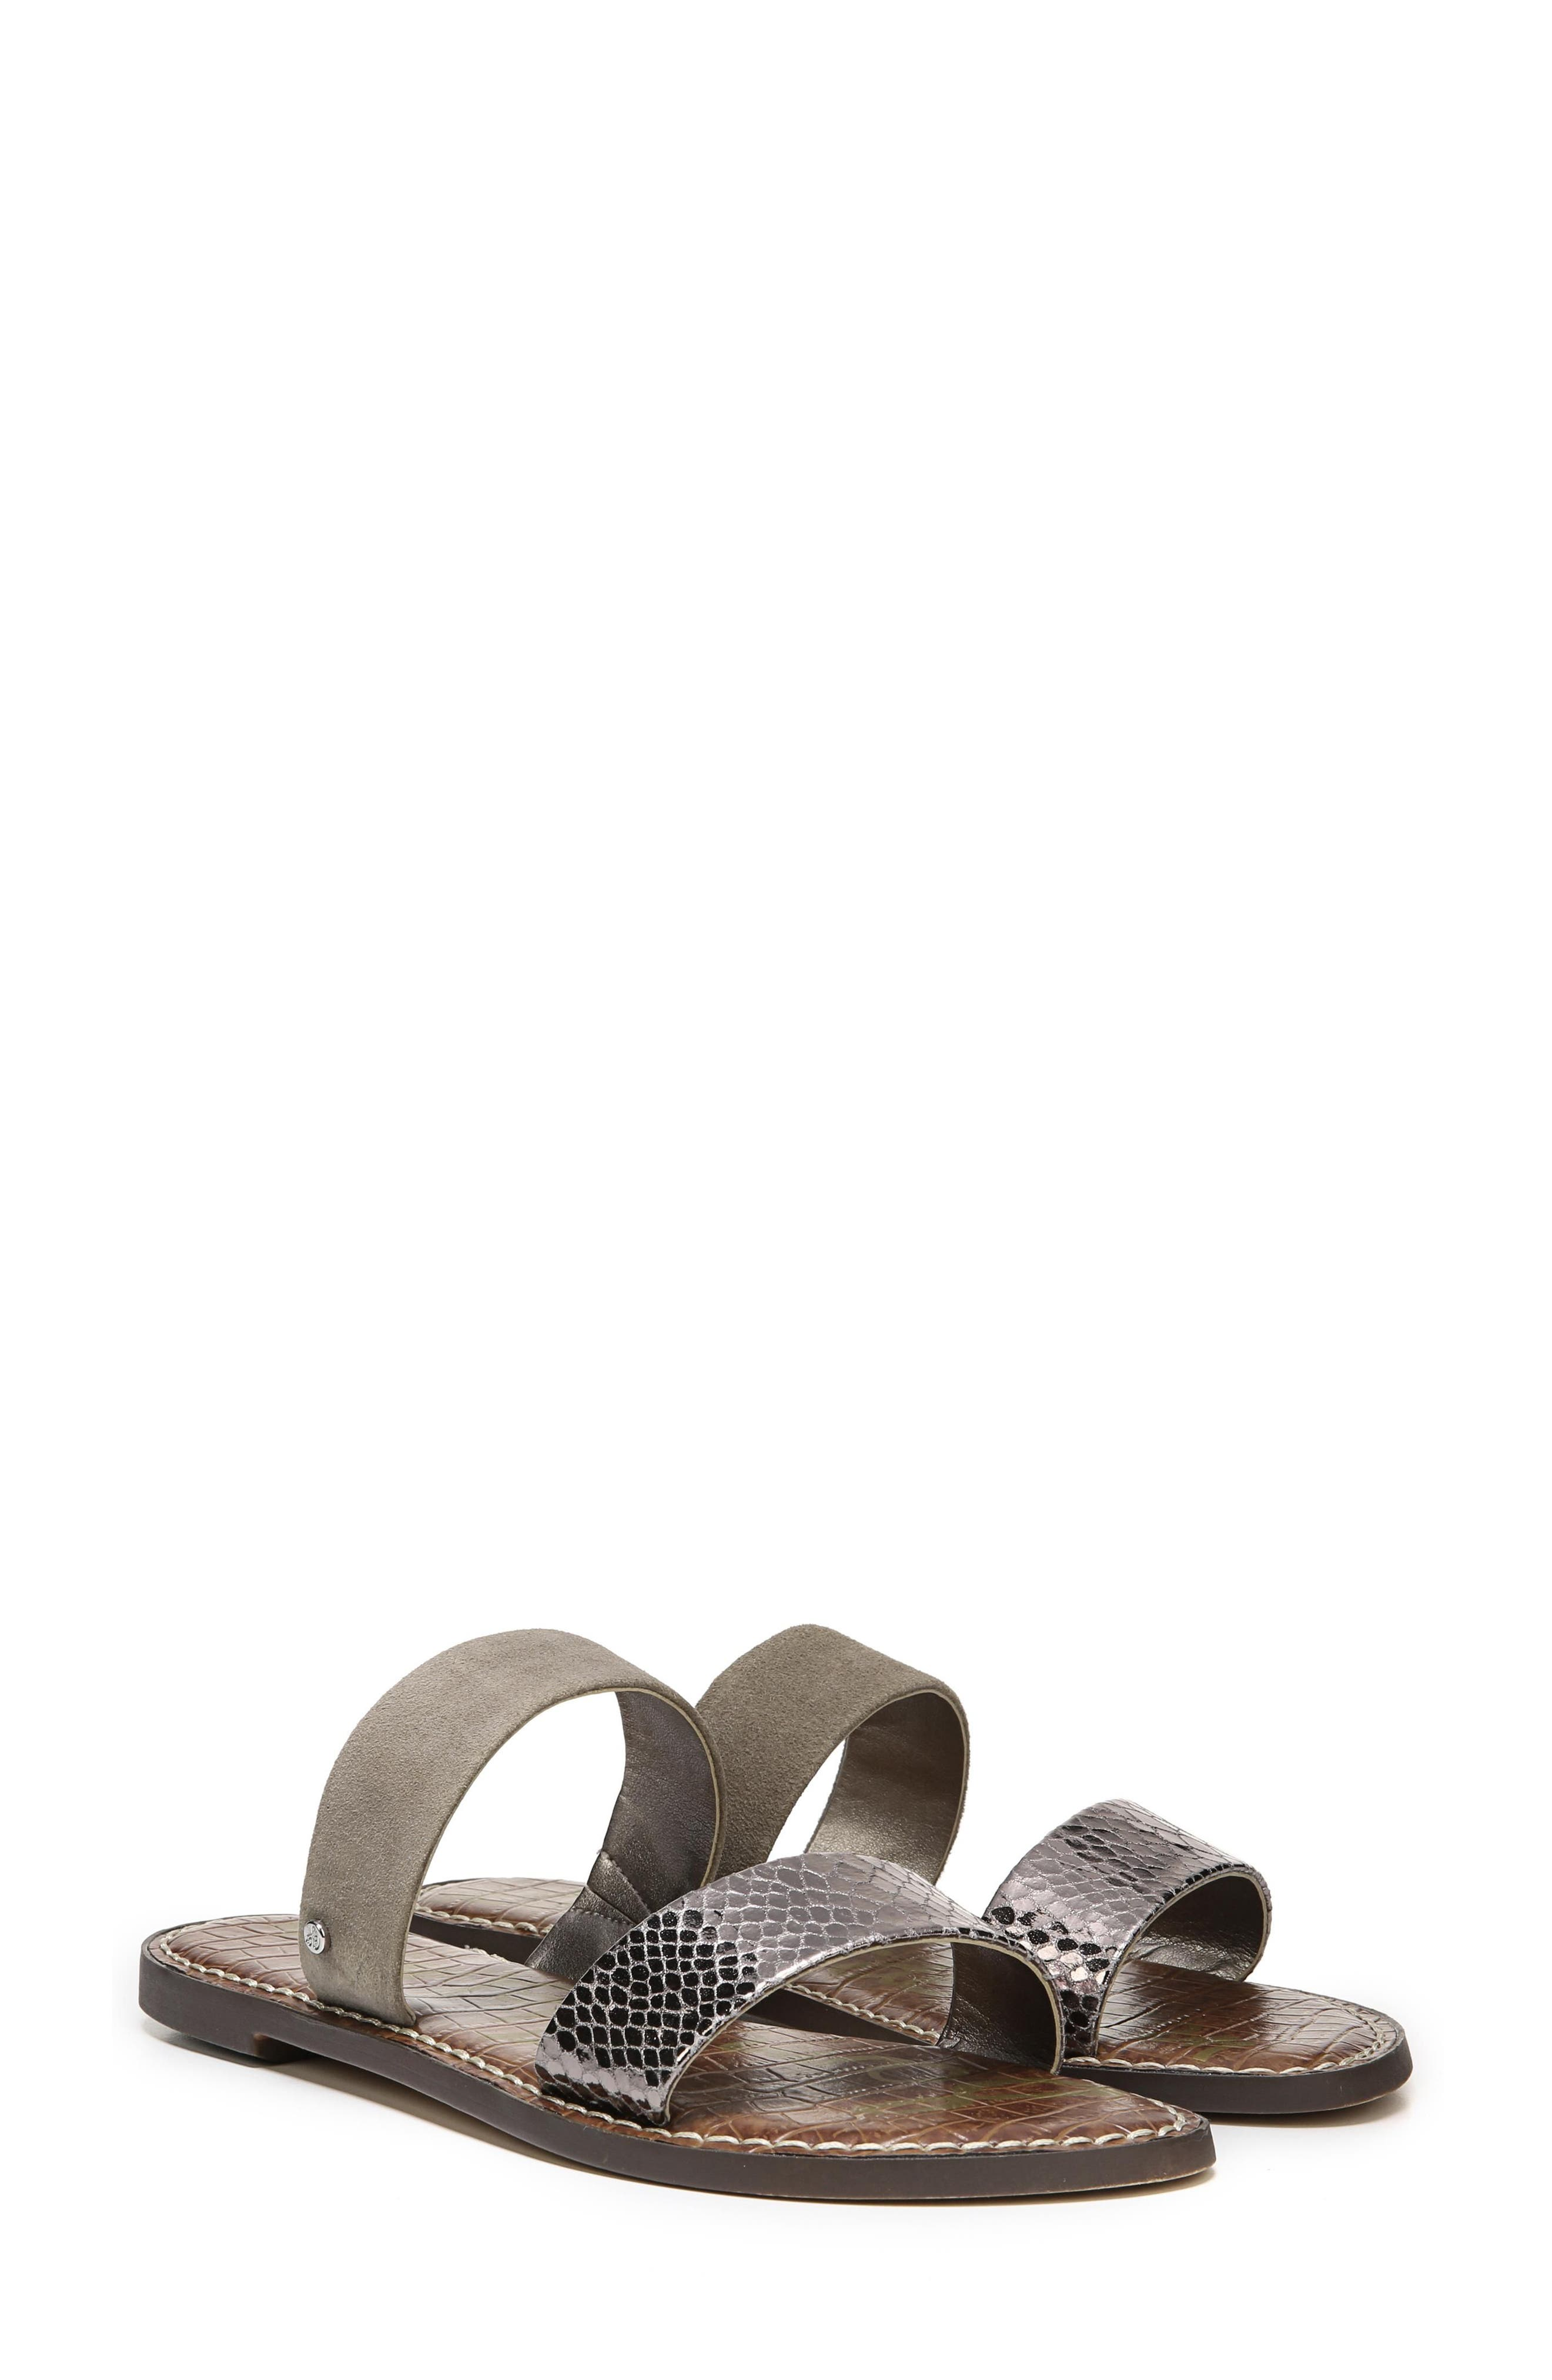 Gala Two Strap Slide Sandal,                             Alternate thumbnail 8, color,                             PEWTER/ PUTTY